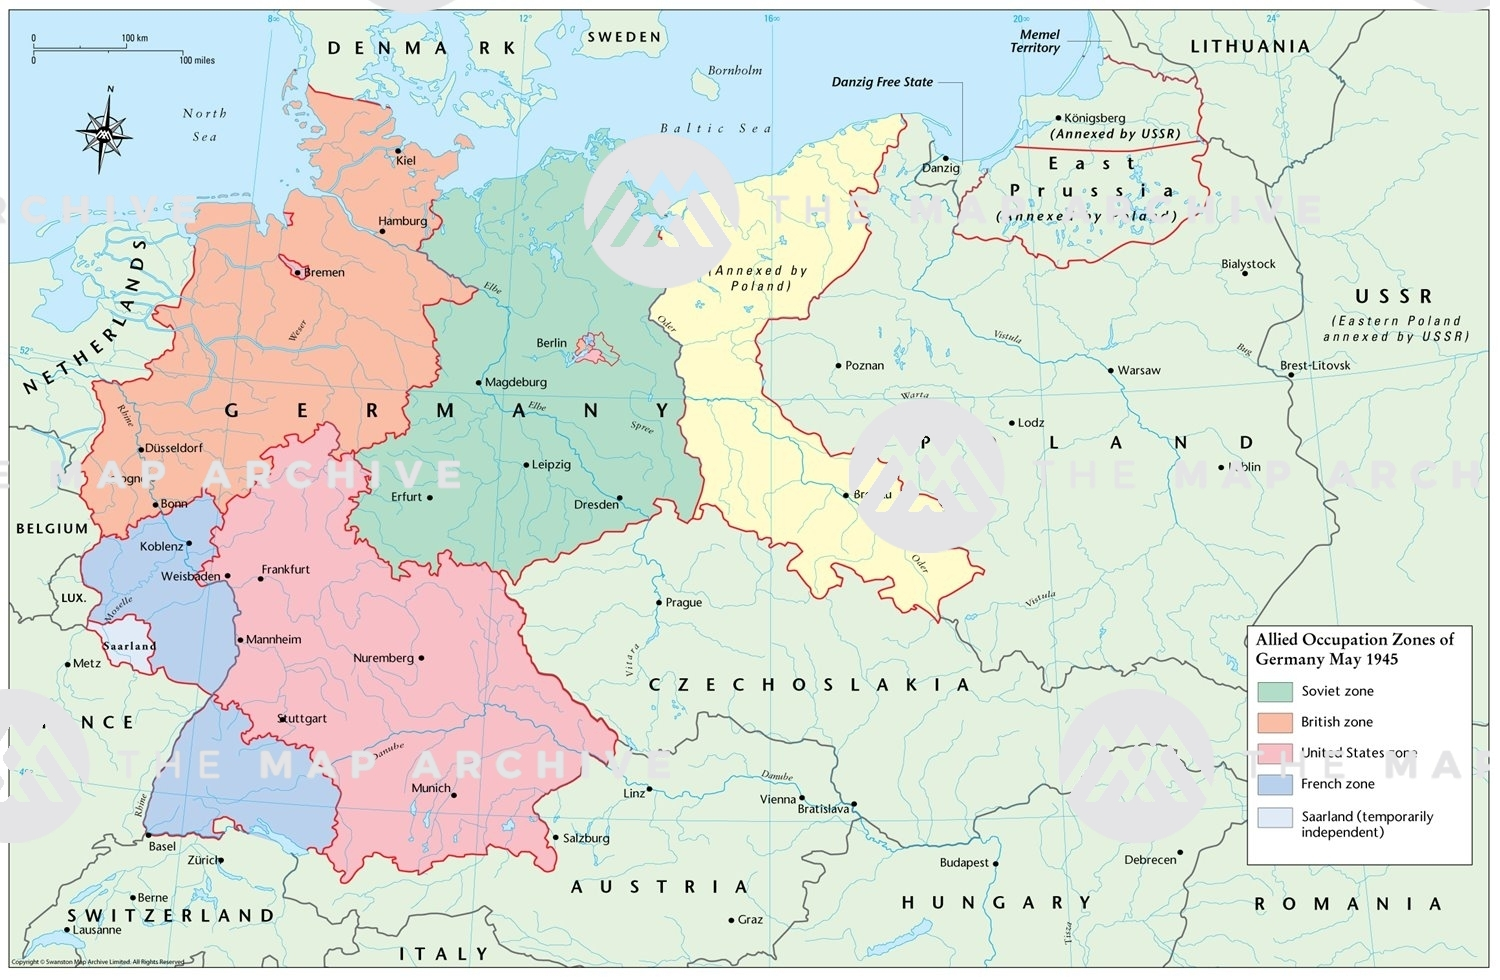 Allied Occupation Zones Of Germany May 1945